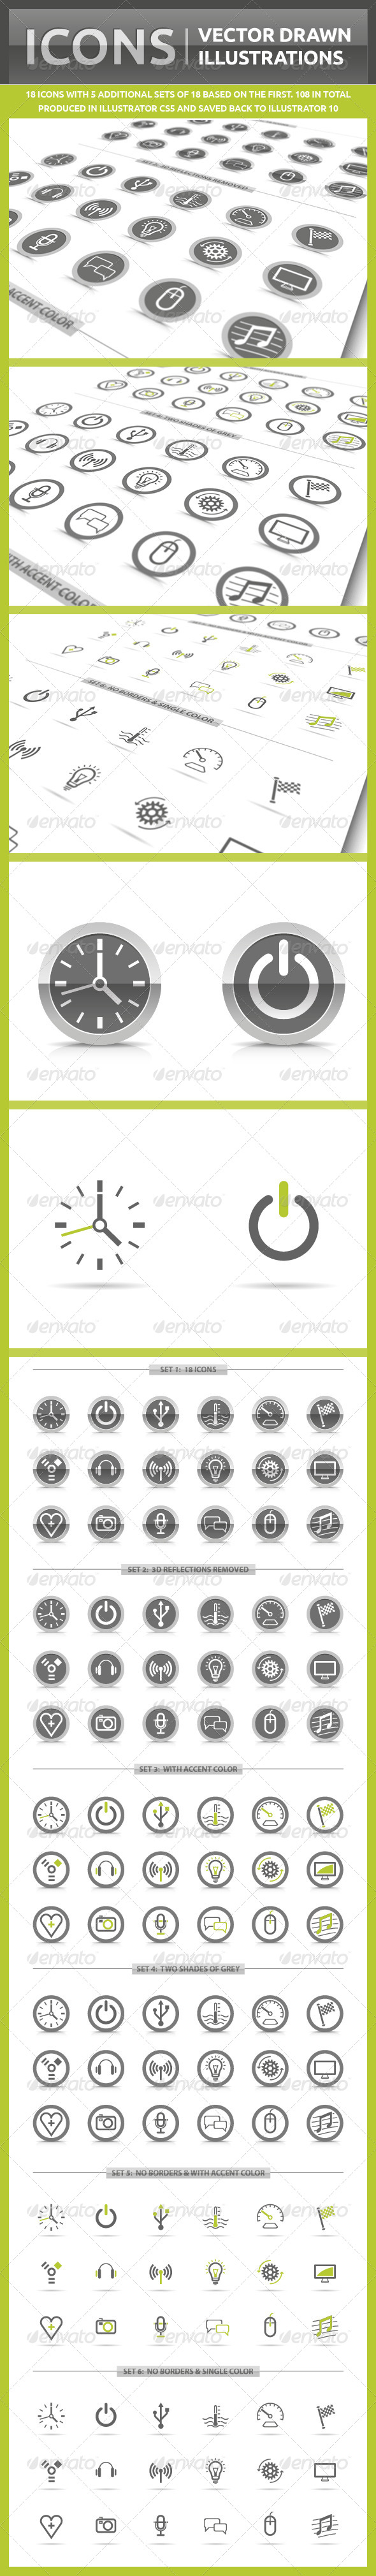 Icons Vector Drawn Illustrations